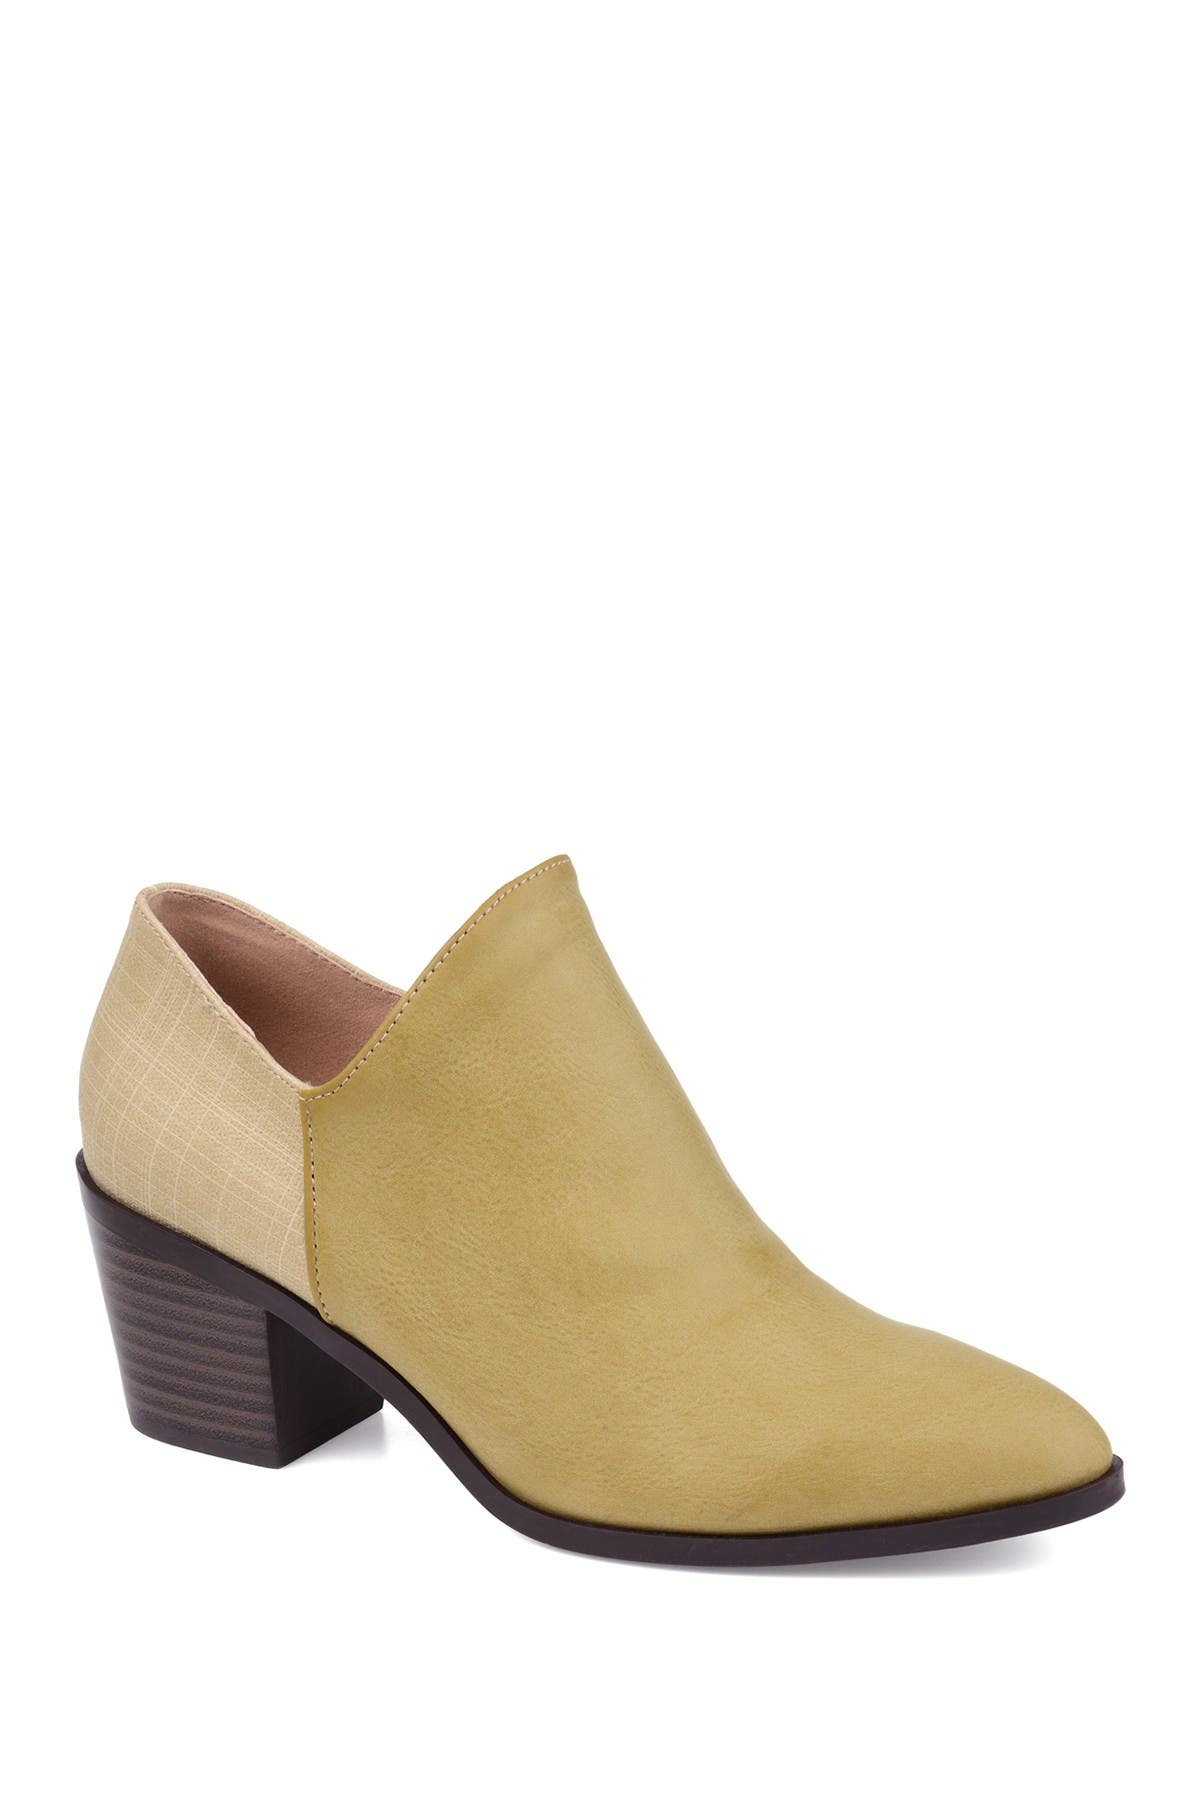 Image of JOURNEE Collection Adison Bootie